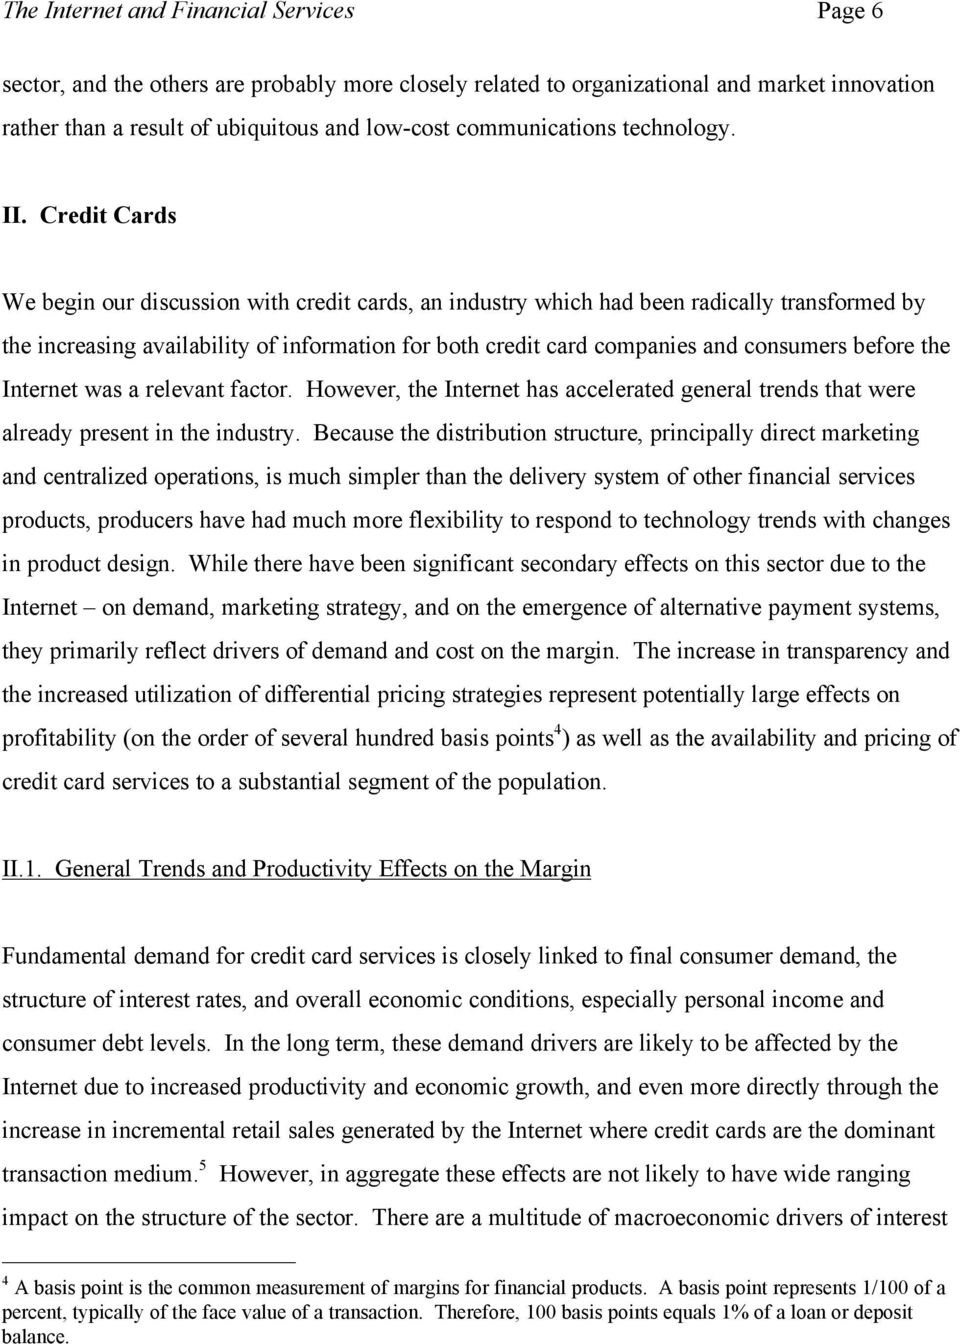 Credit Cards We begin our discussion with credit cards, an industry which had been radically transformed by the increasing availability of information for both credit card companies and consumers